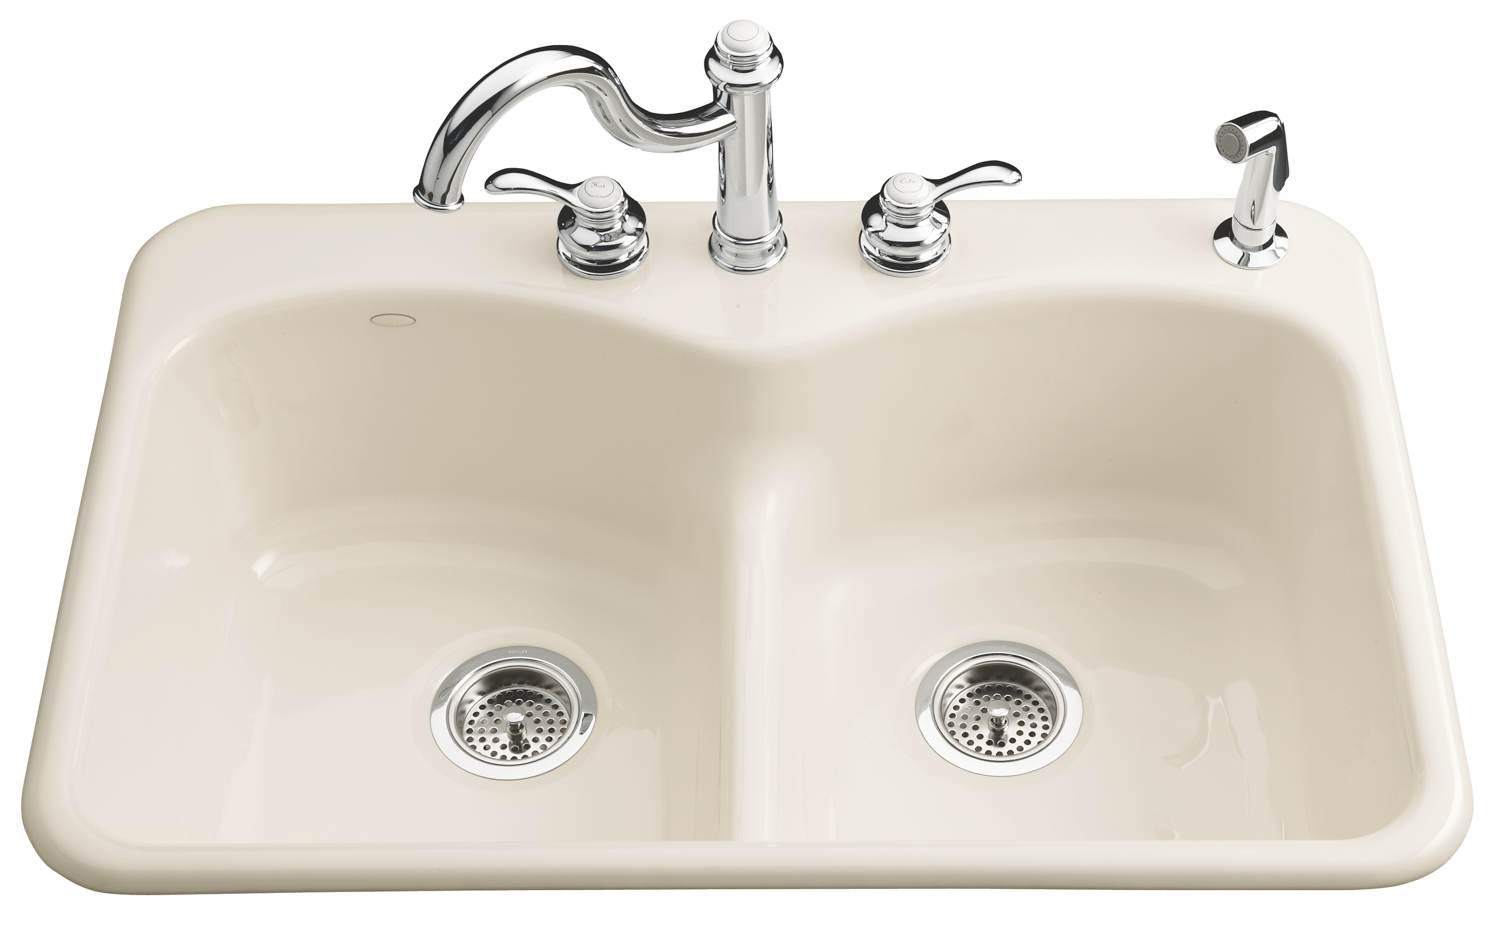 Kohler Cast Iron Sink Colors - Home Design Ideas and Pictures